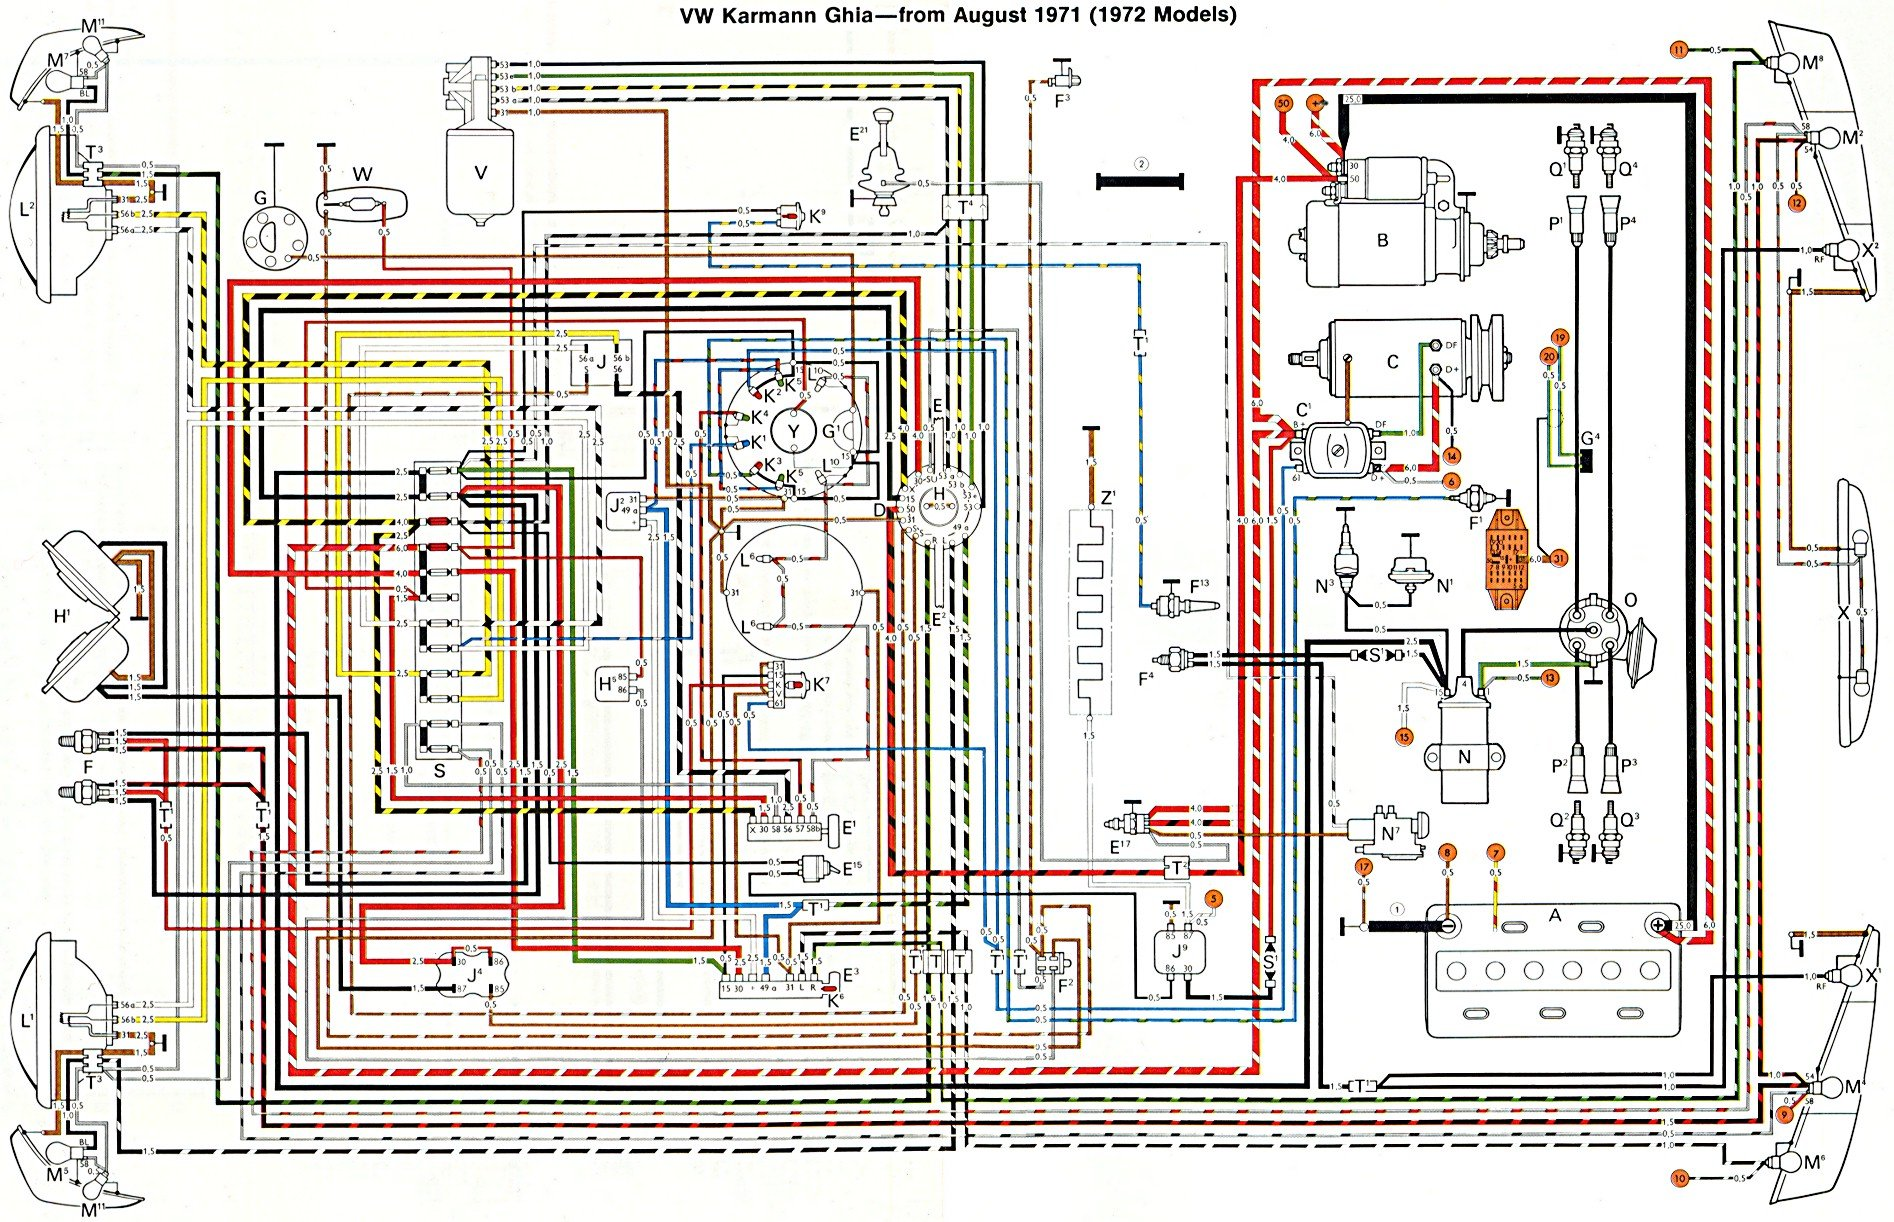 72ghia 100 [ electrical connection diagram ] electrical wiring 1965 vw beetle wiring diagram at nearapp.co